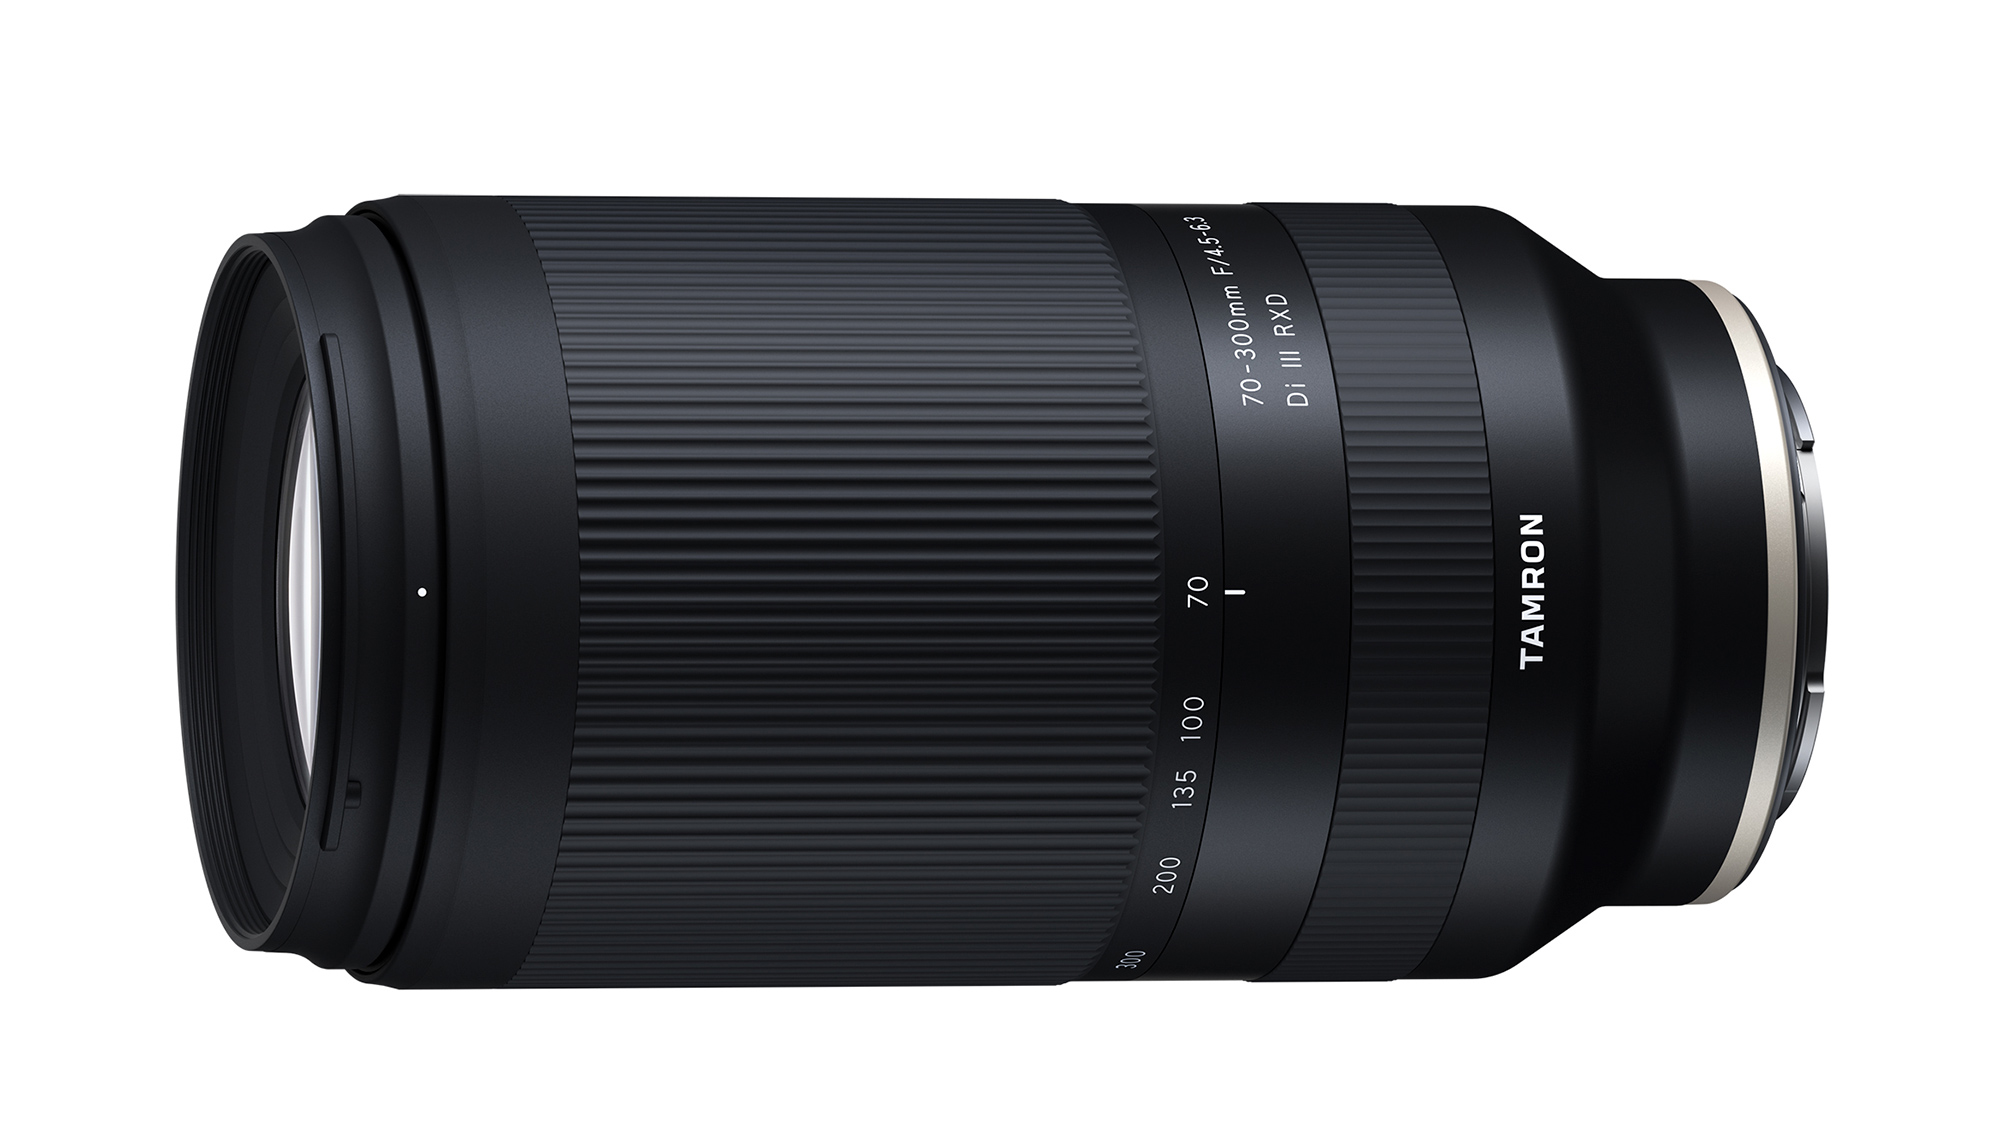 Tamron Is One Of The Biggest Reasons To Choose Sony Full-Frame Mirrorless Right Now!